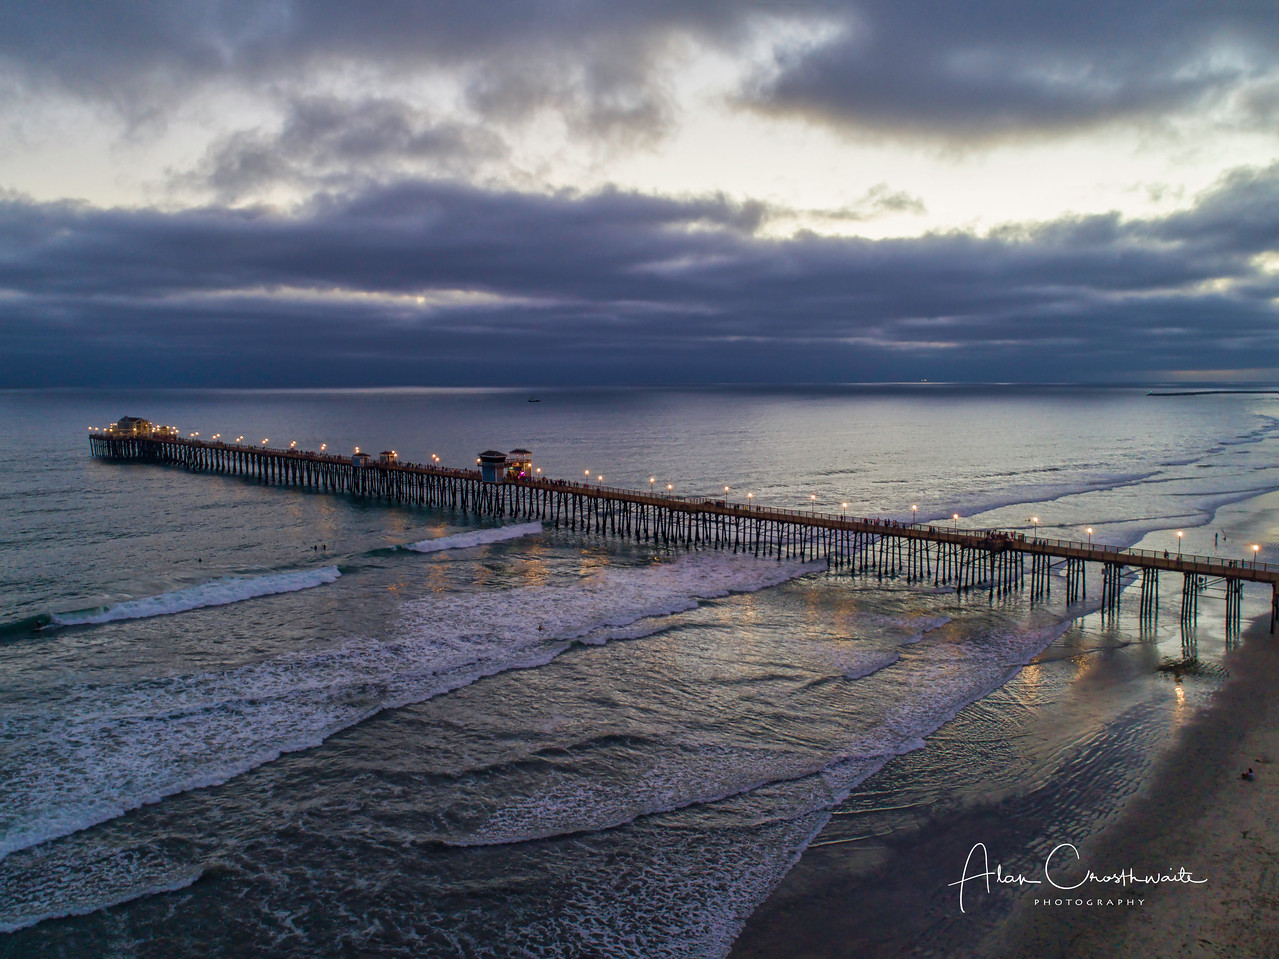 The long pier